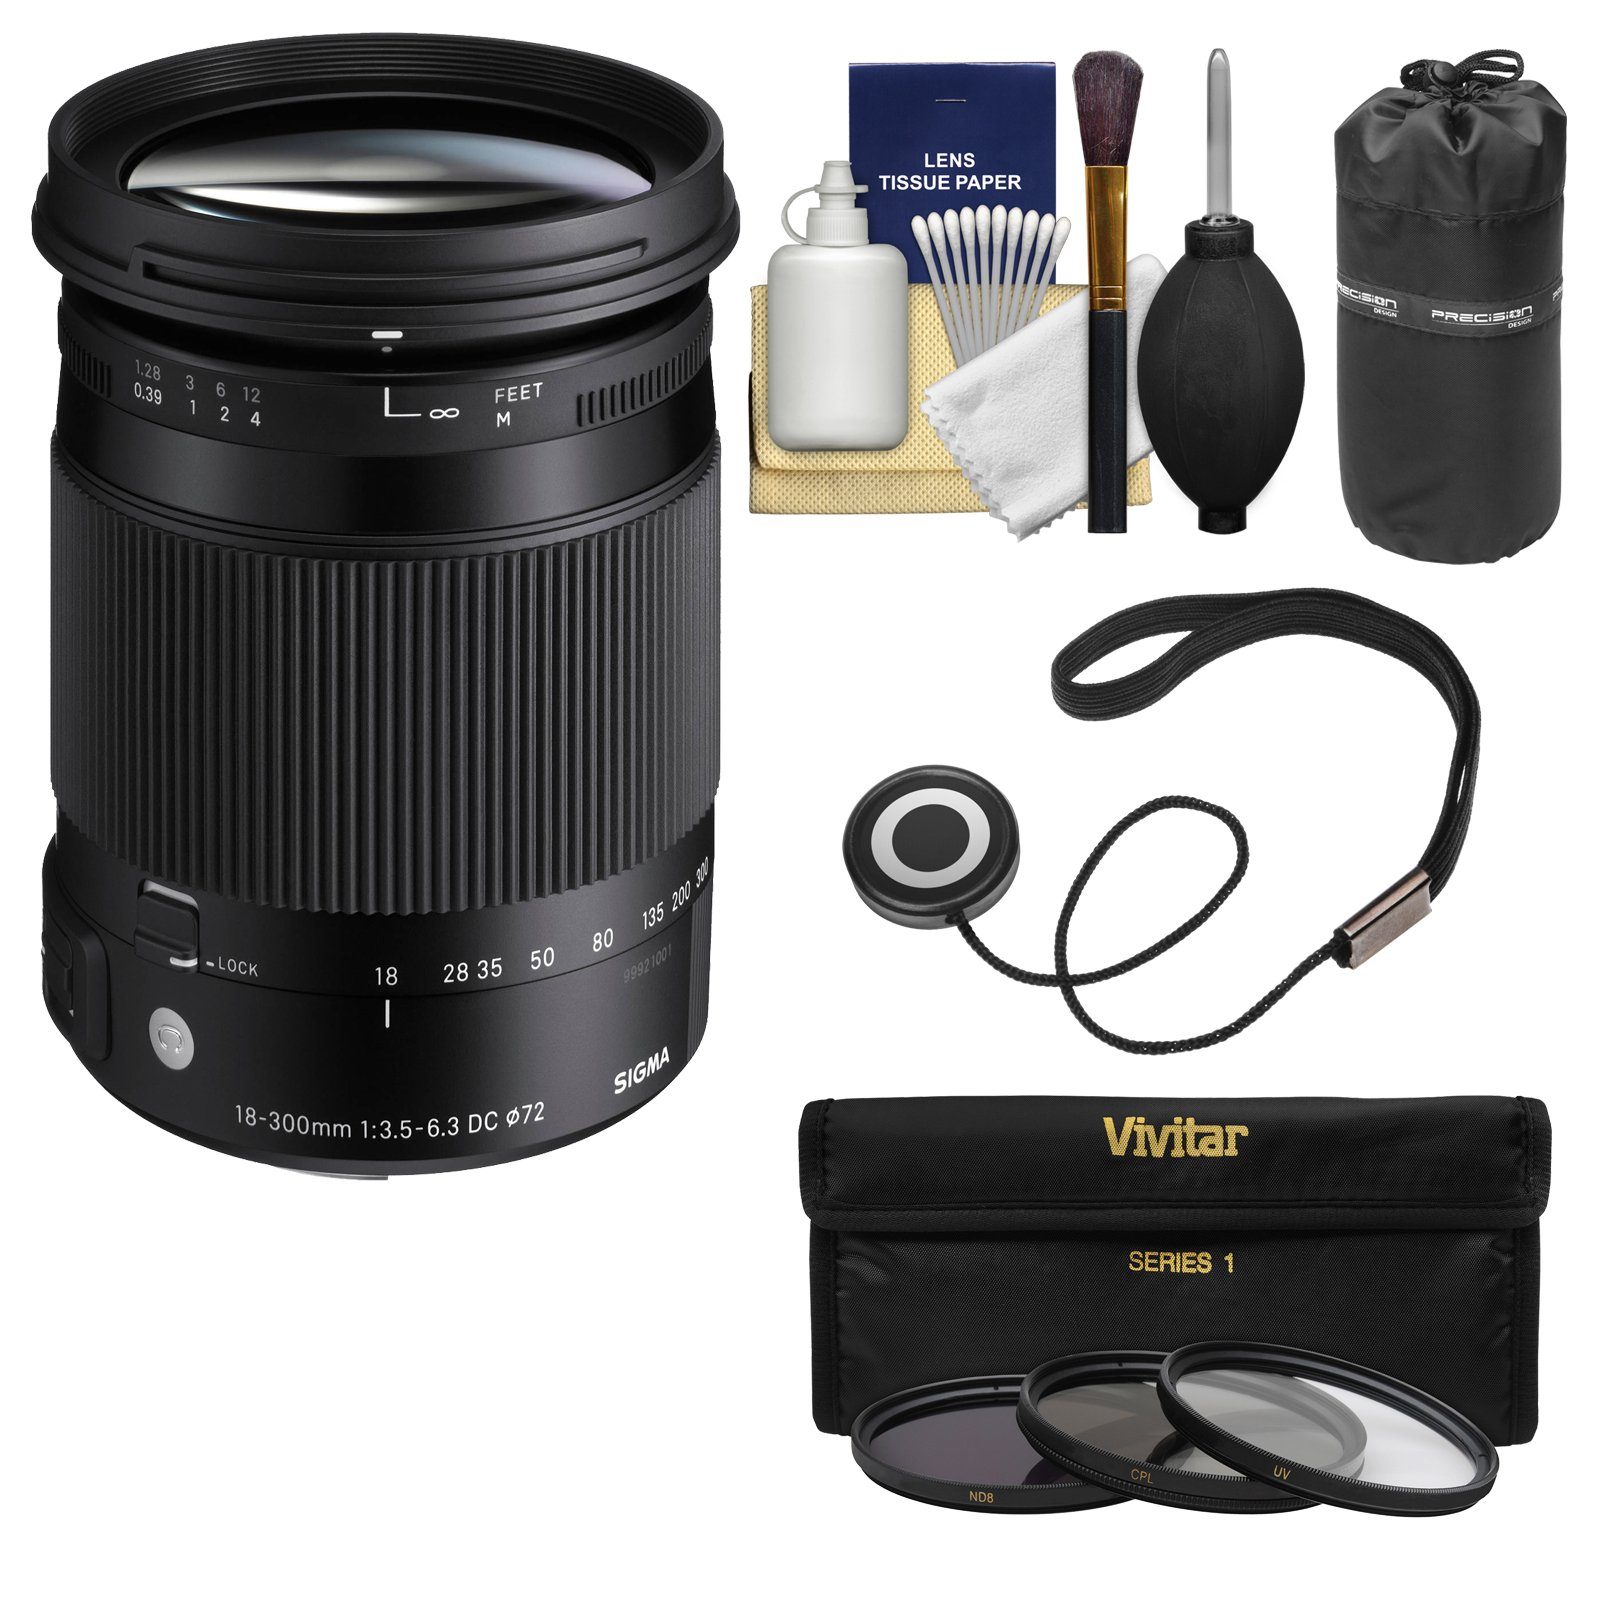 Sigma 18-300mm f/3.5-6.3 Contemporary DC Macro OS HSM Zoom Lens for Canon EOS DSLR Cameras with Pouch + 3 UV/CPL/ND8 Filters + Kit by Sigma